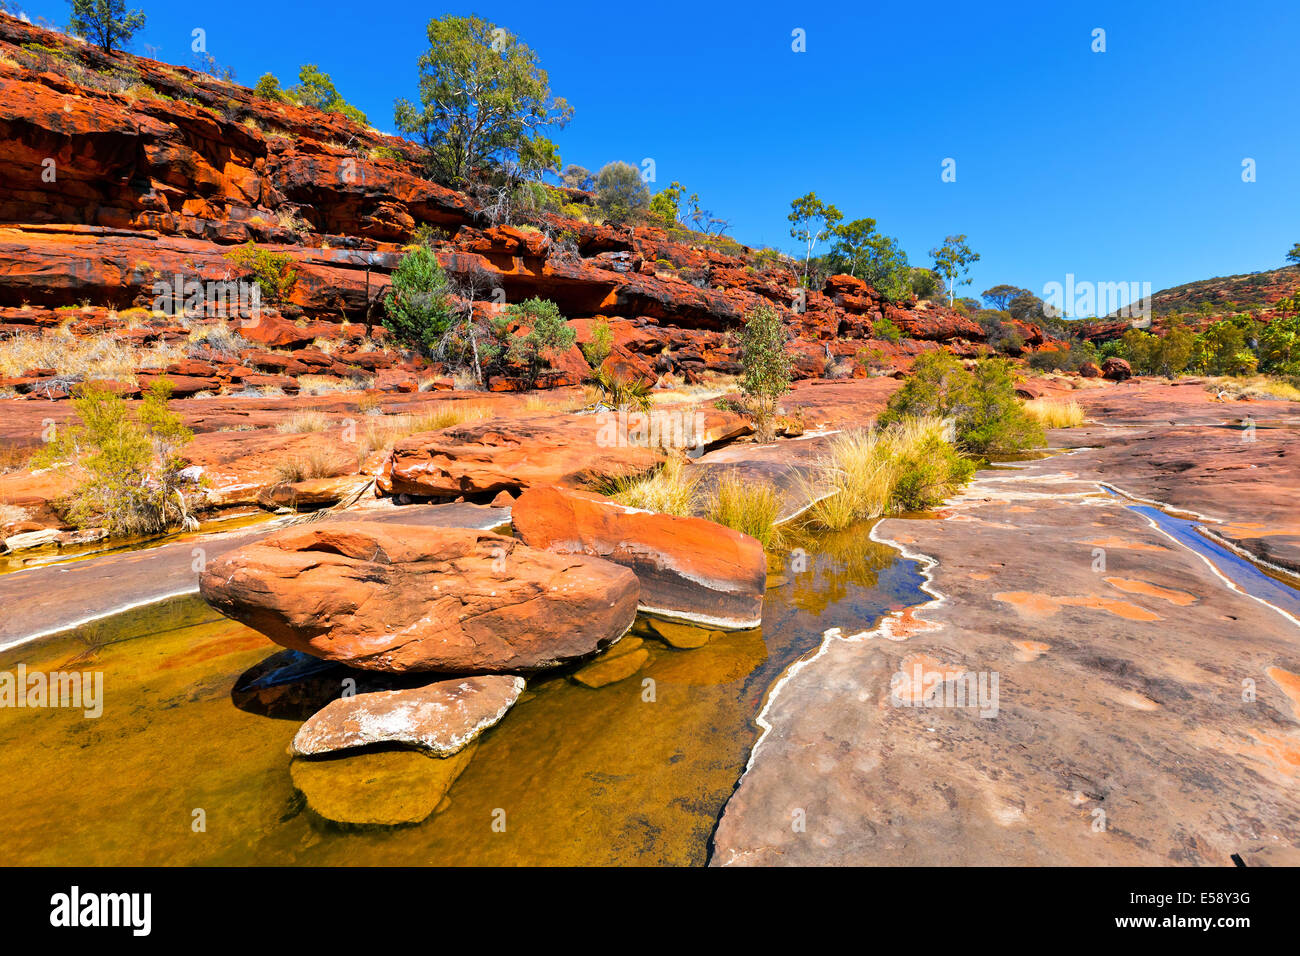 Palm Valley Central Australia Northern Territory Stockbild